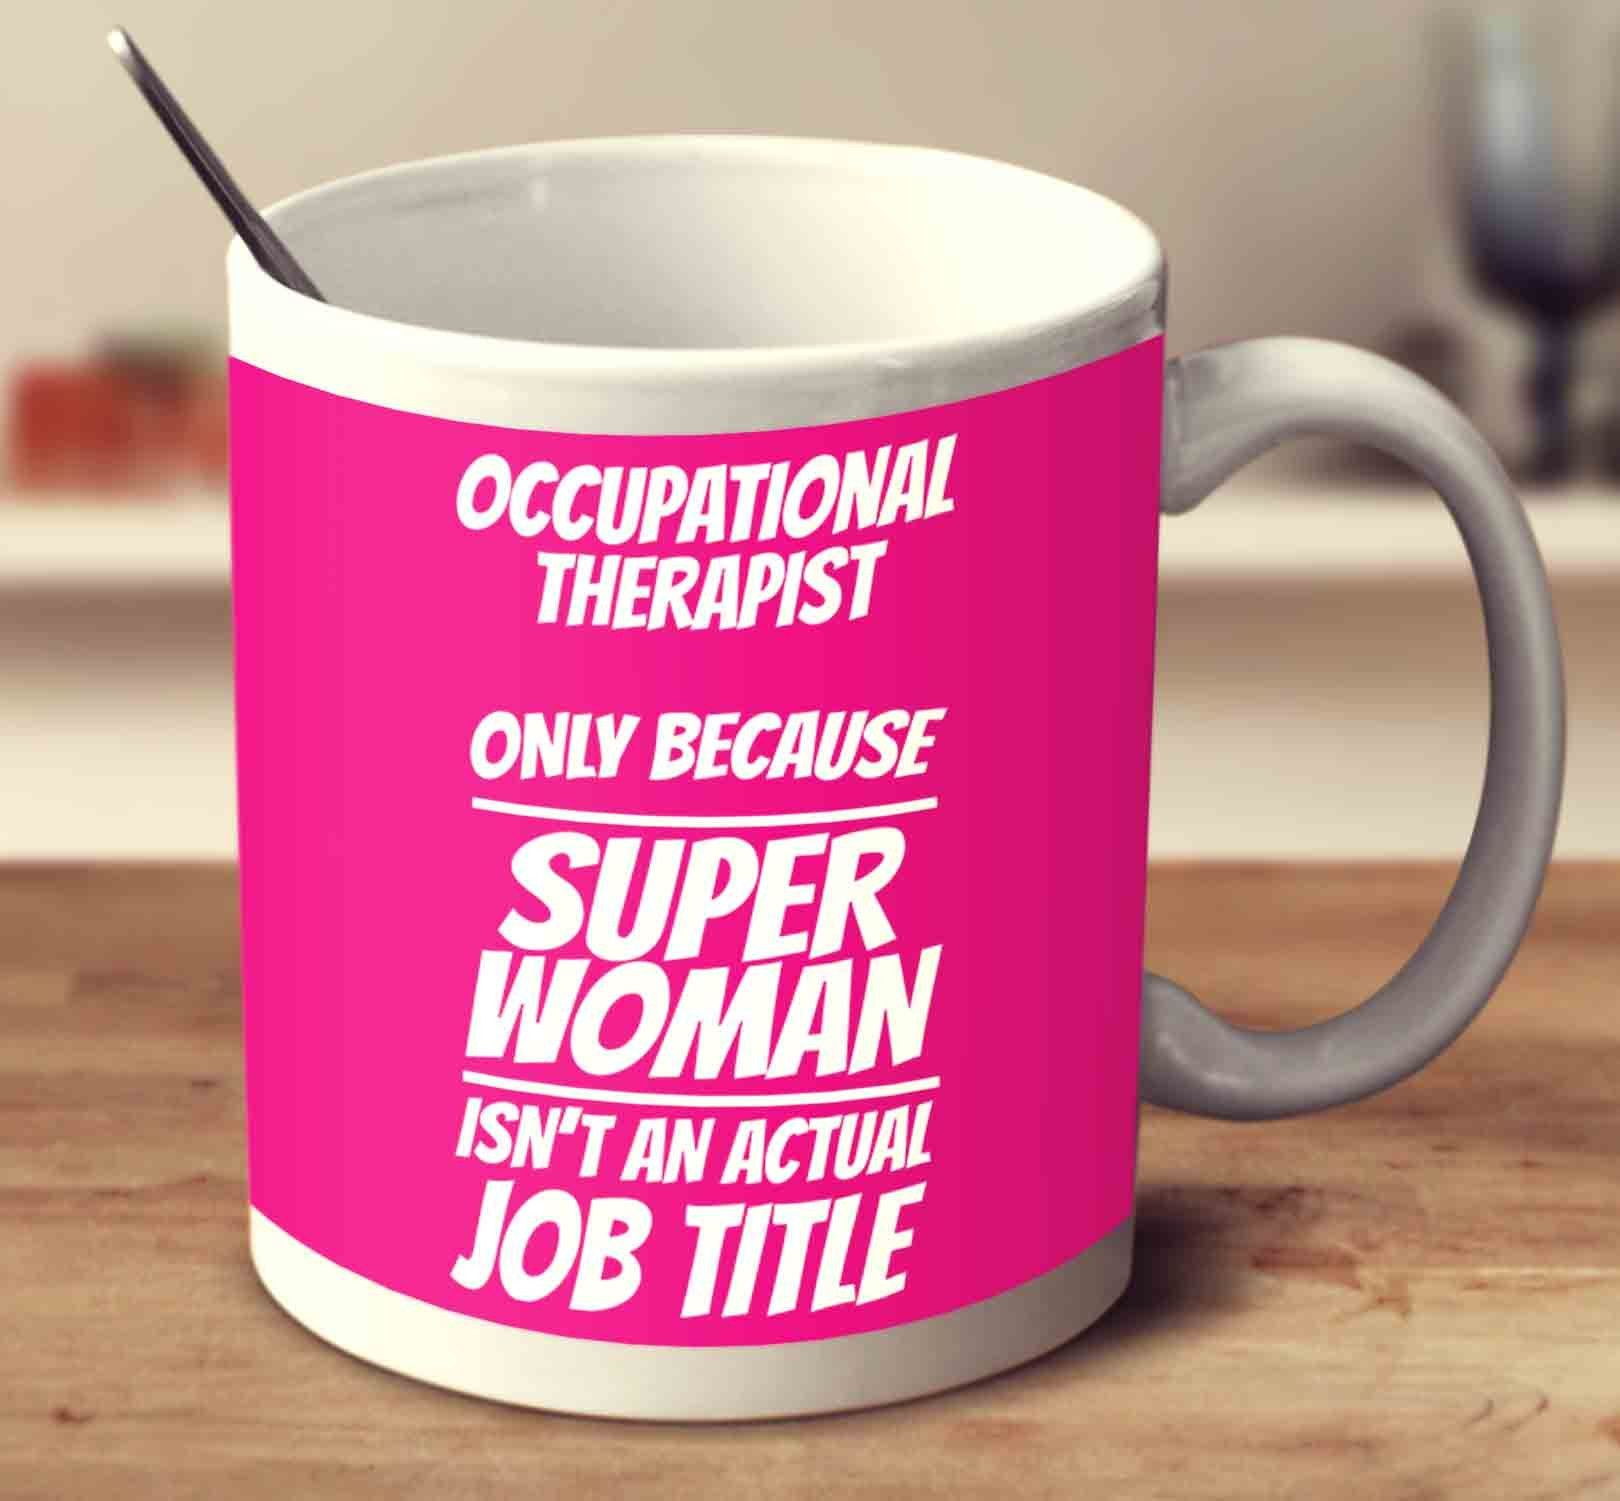 Occupational Therapist Only Because Super Woman Isn't An